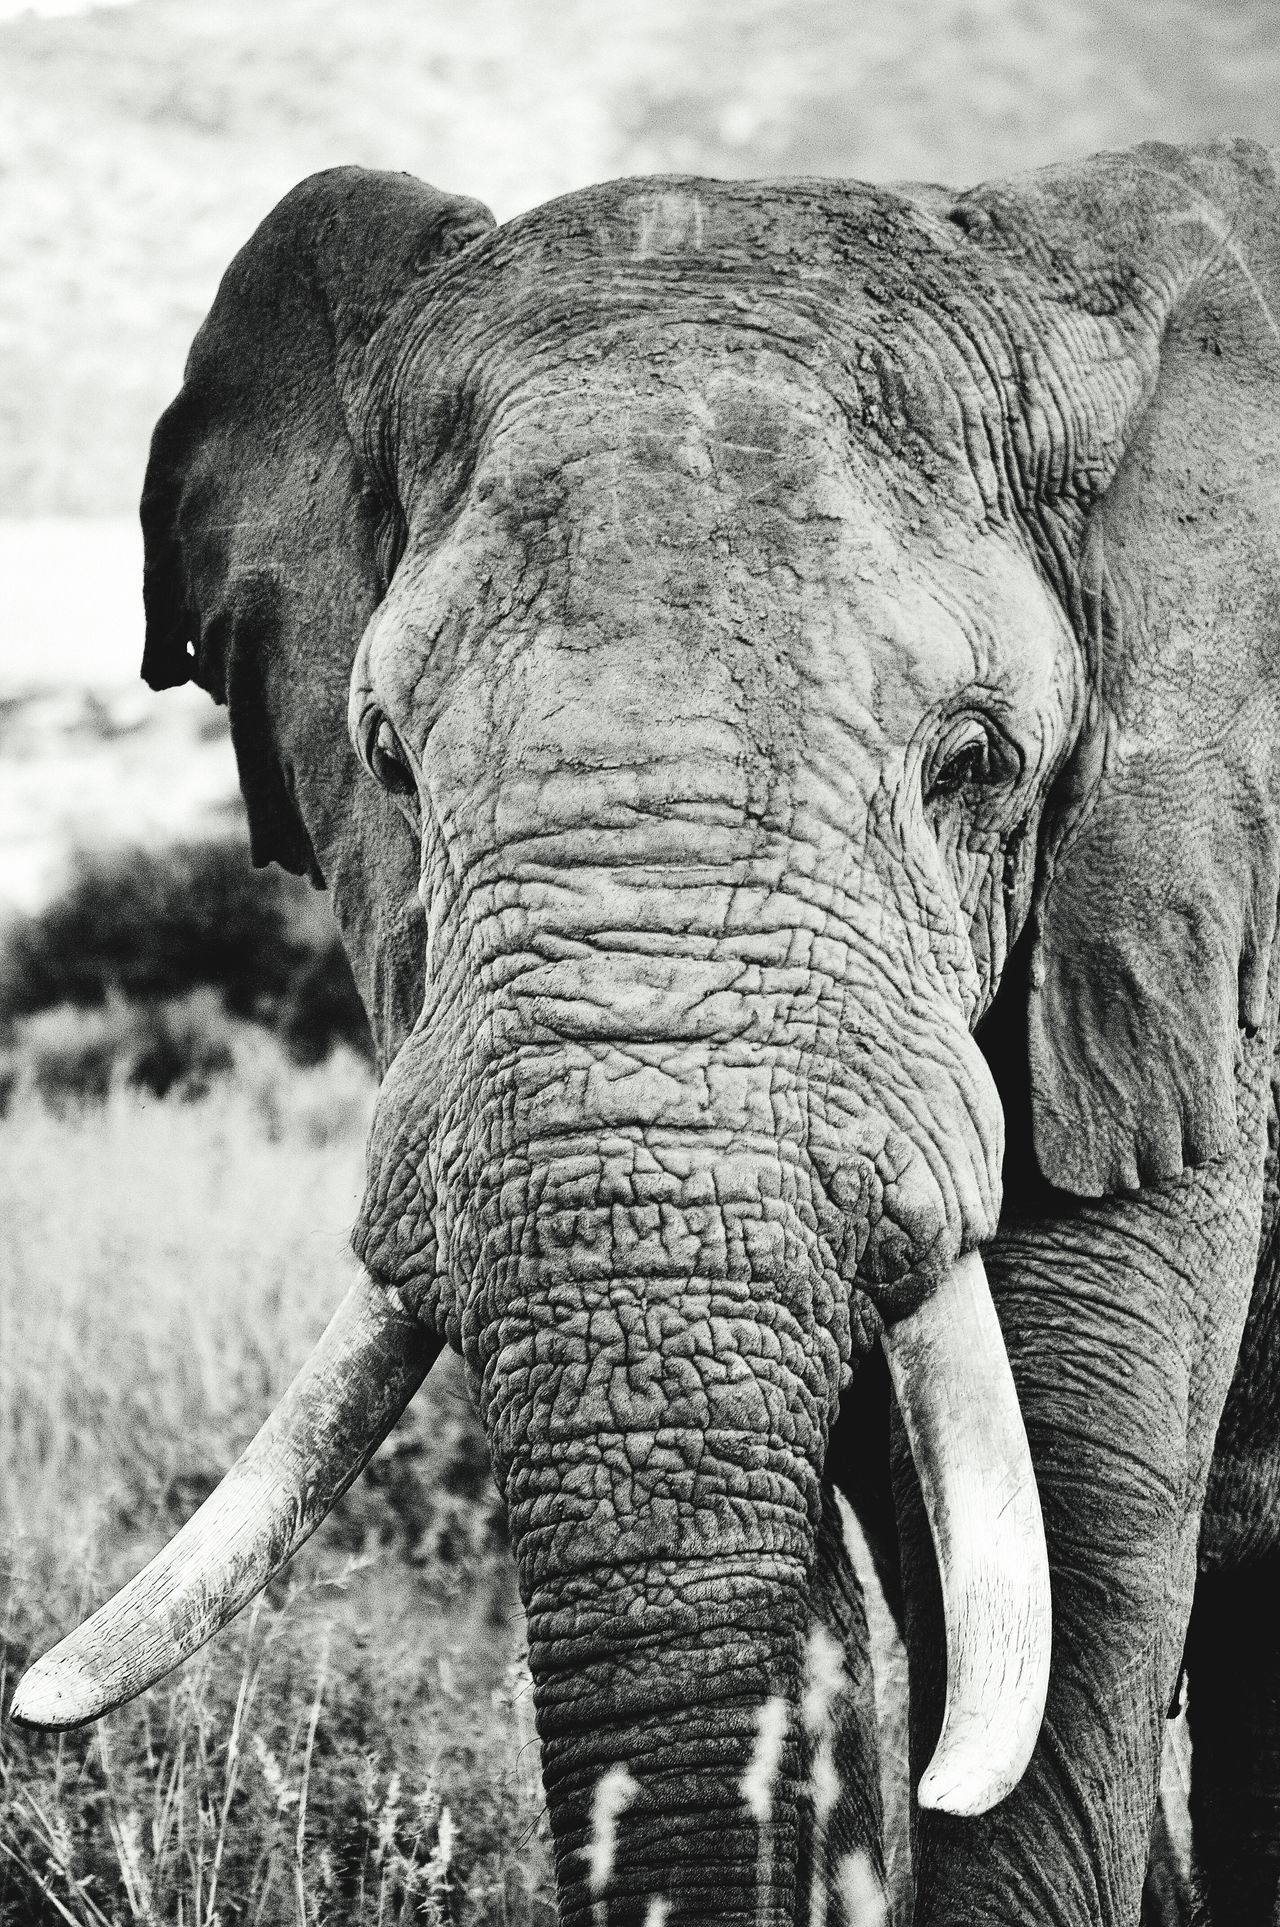 Elephant Africanelephant Black And White Portrait HEAD Safari Safari Animals National Park Animals In The Wild Wildlife & Nature GameDrive Nature_collection Nature Animals Bigfive Tusk South Africa Pilanesberg Nationalpark Wildlife Mammal